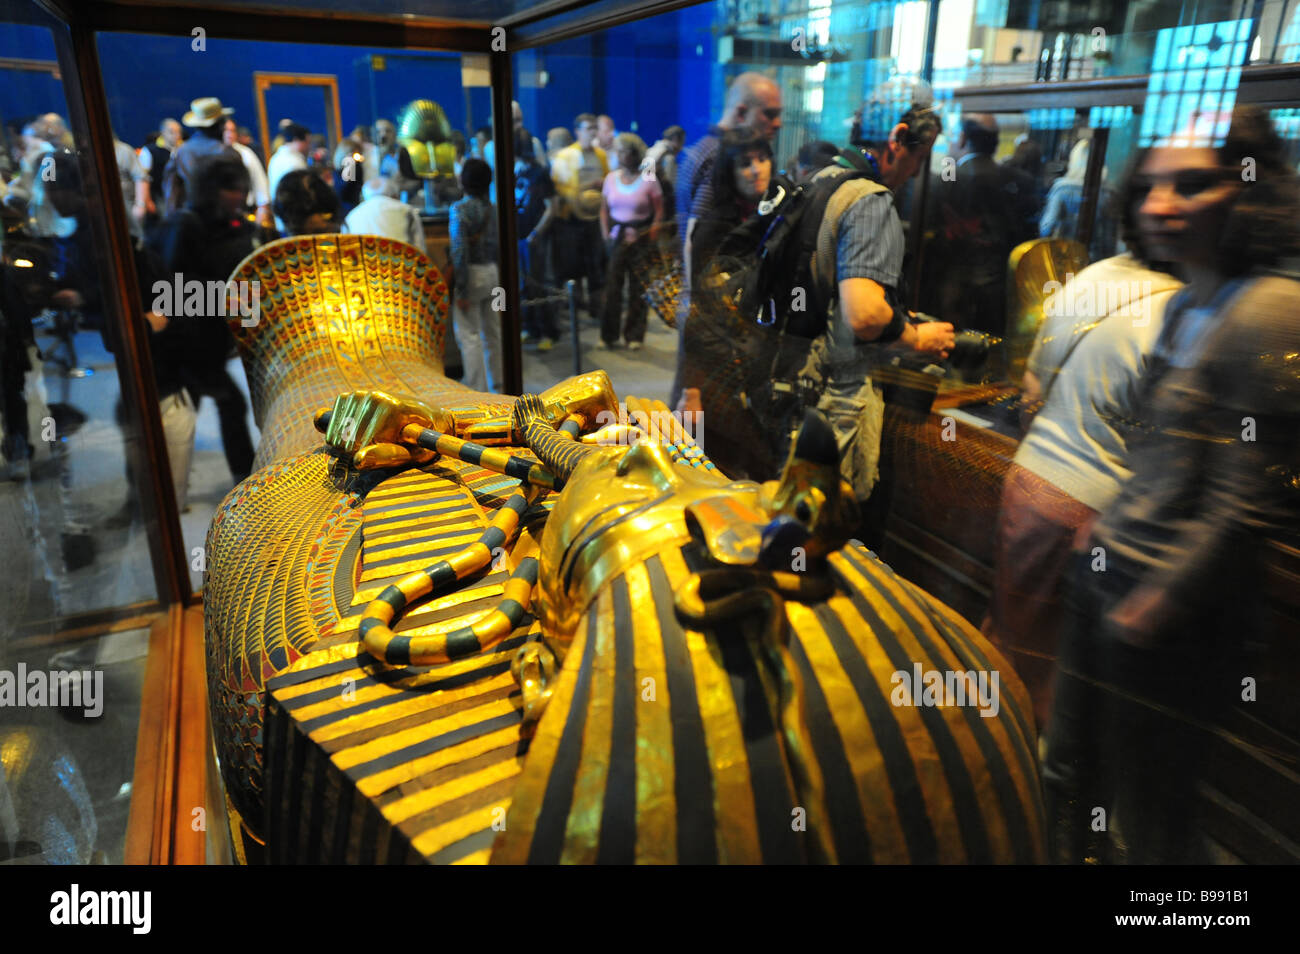 Egypt Cairo The Egyptian Museum interior museum of antiquities and ancient culture Tutankhamun s coffin - Stock Image